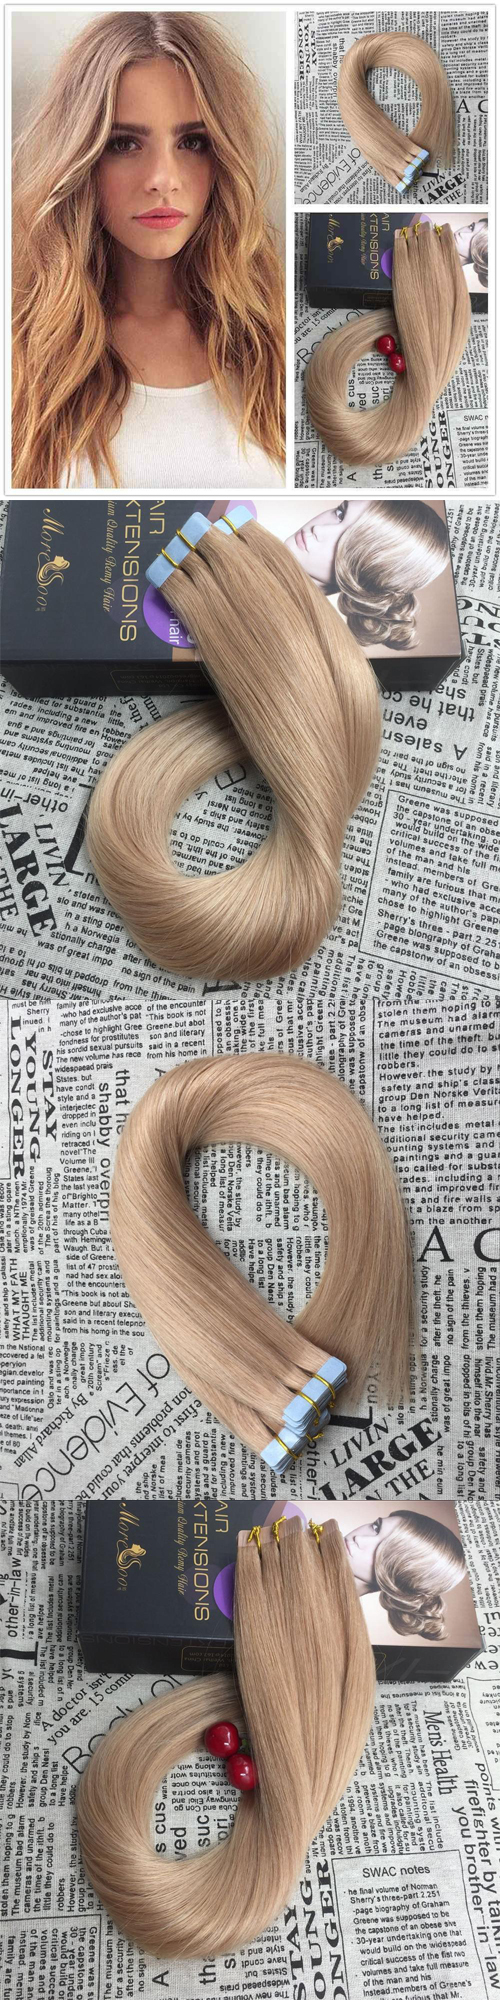 3299 Moresoo Strawberry Blonde Tape In Hair Extensionsget You